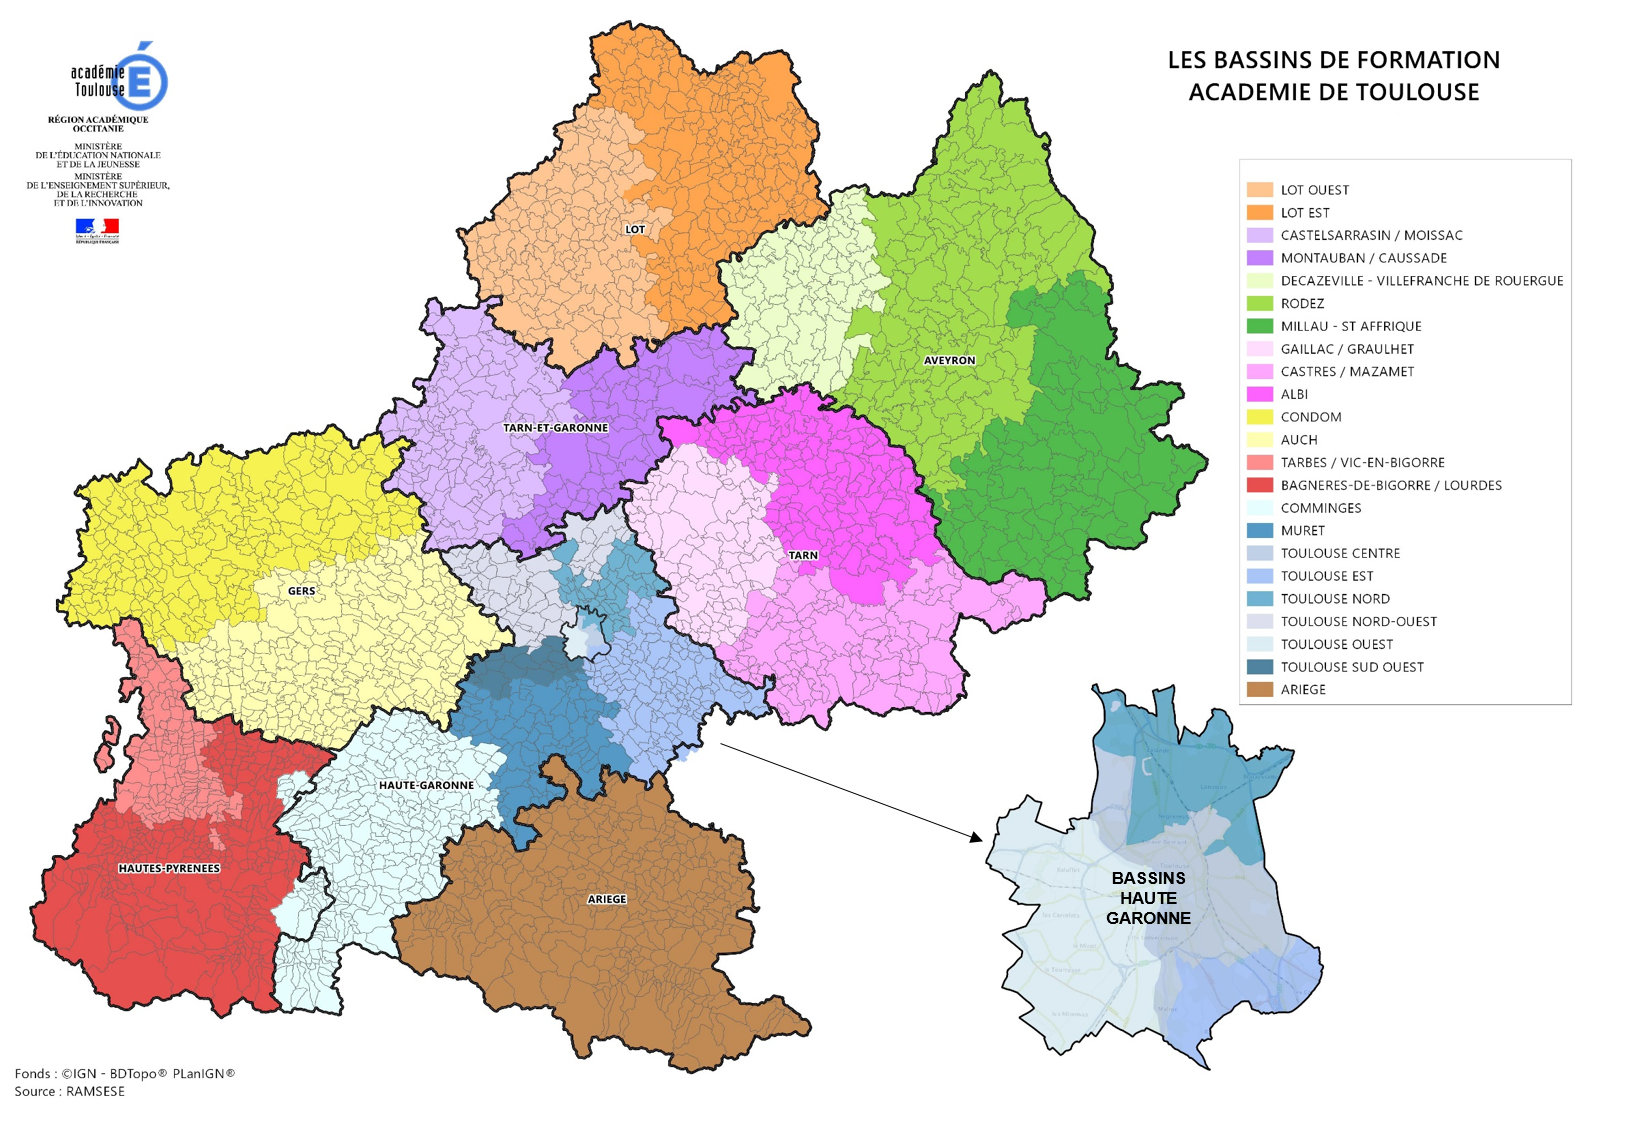 Carte des bassins